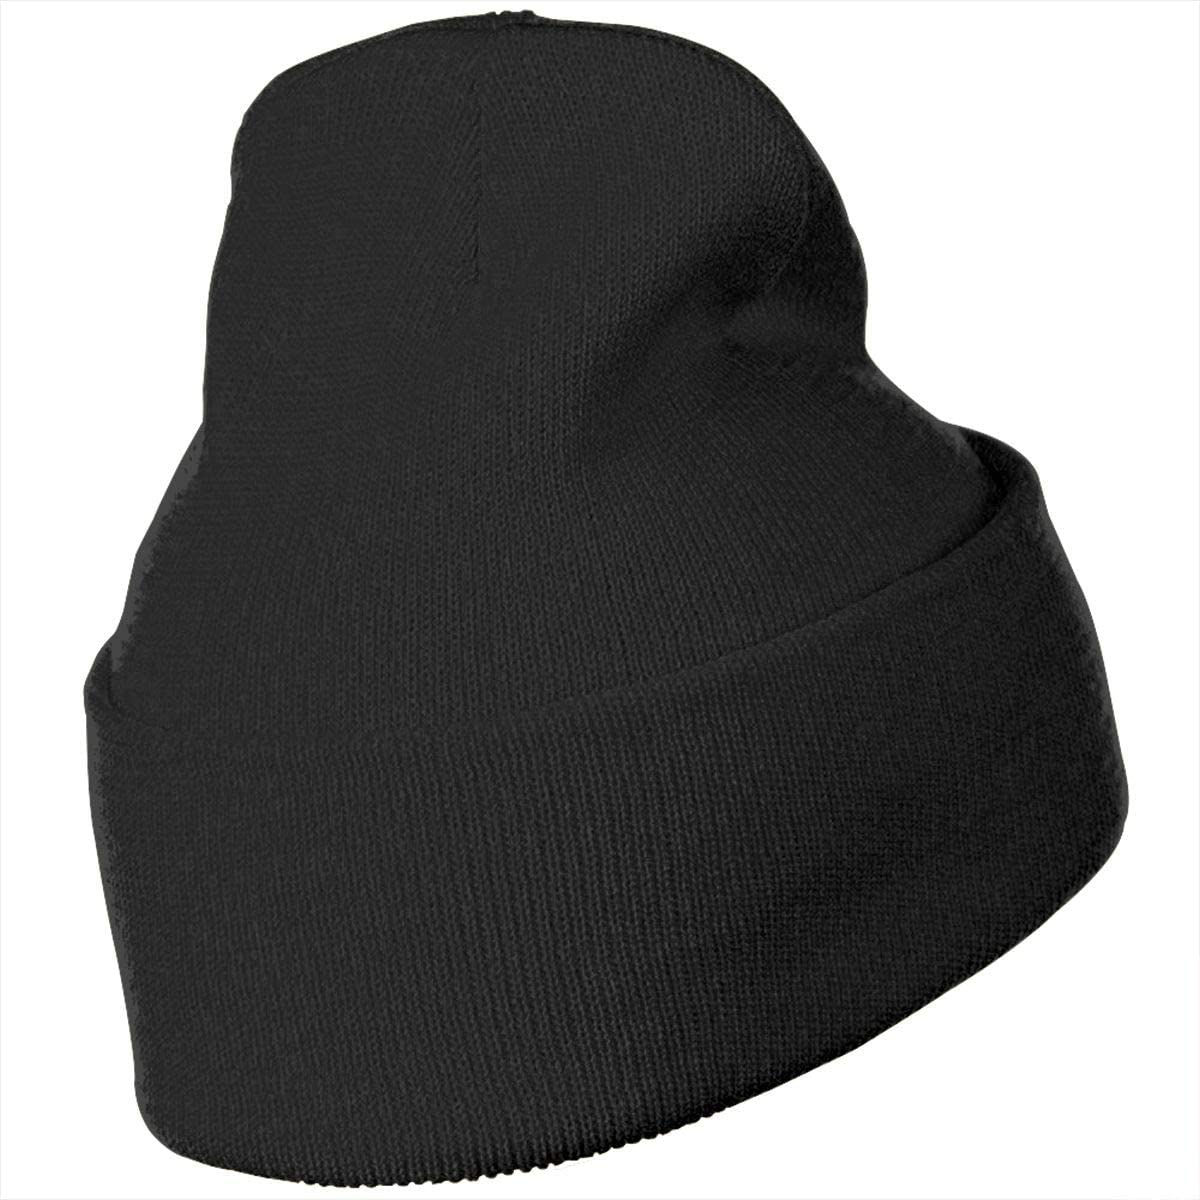 JimHappy USA Marine Corps Flag Hat for Men and Women Winter Warm Hats Knit Slouchy Thick Skull Cap Black